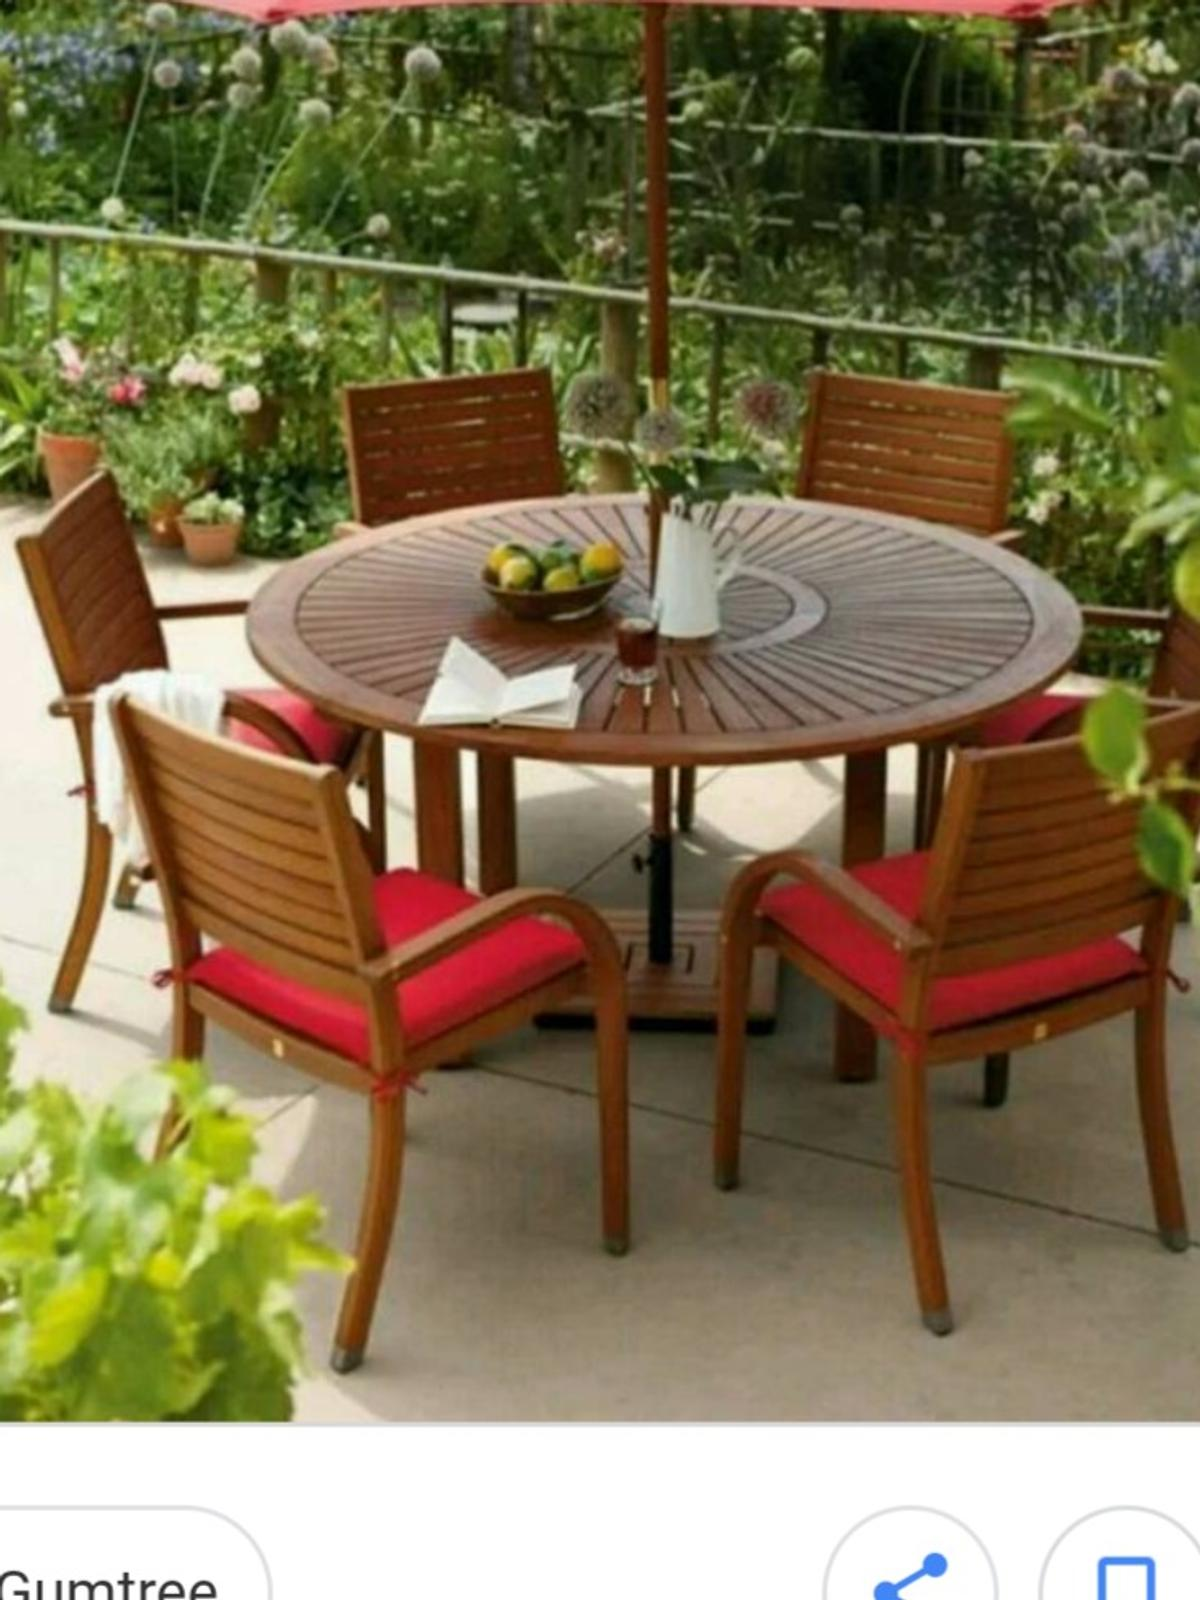 6 Seater Wooden Garden Table And Chairs